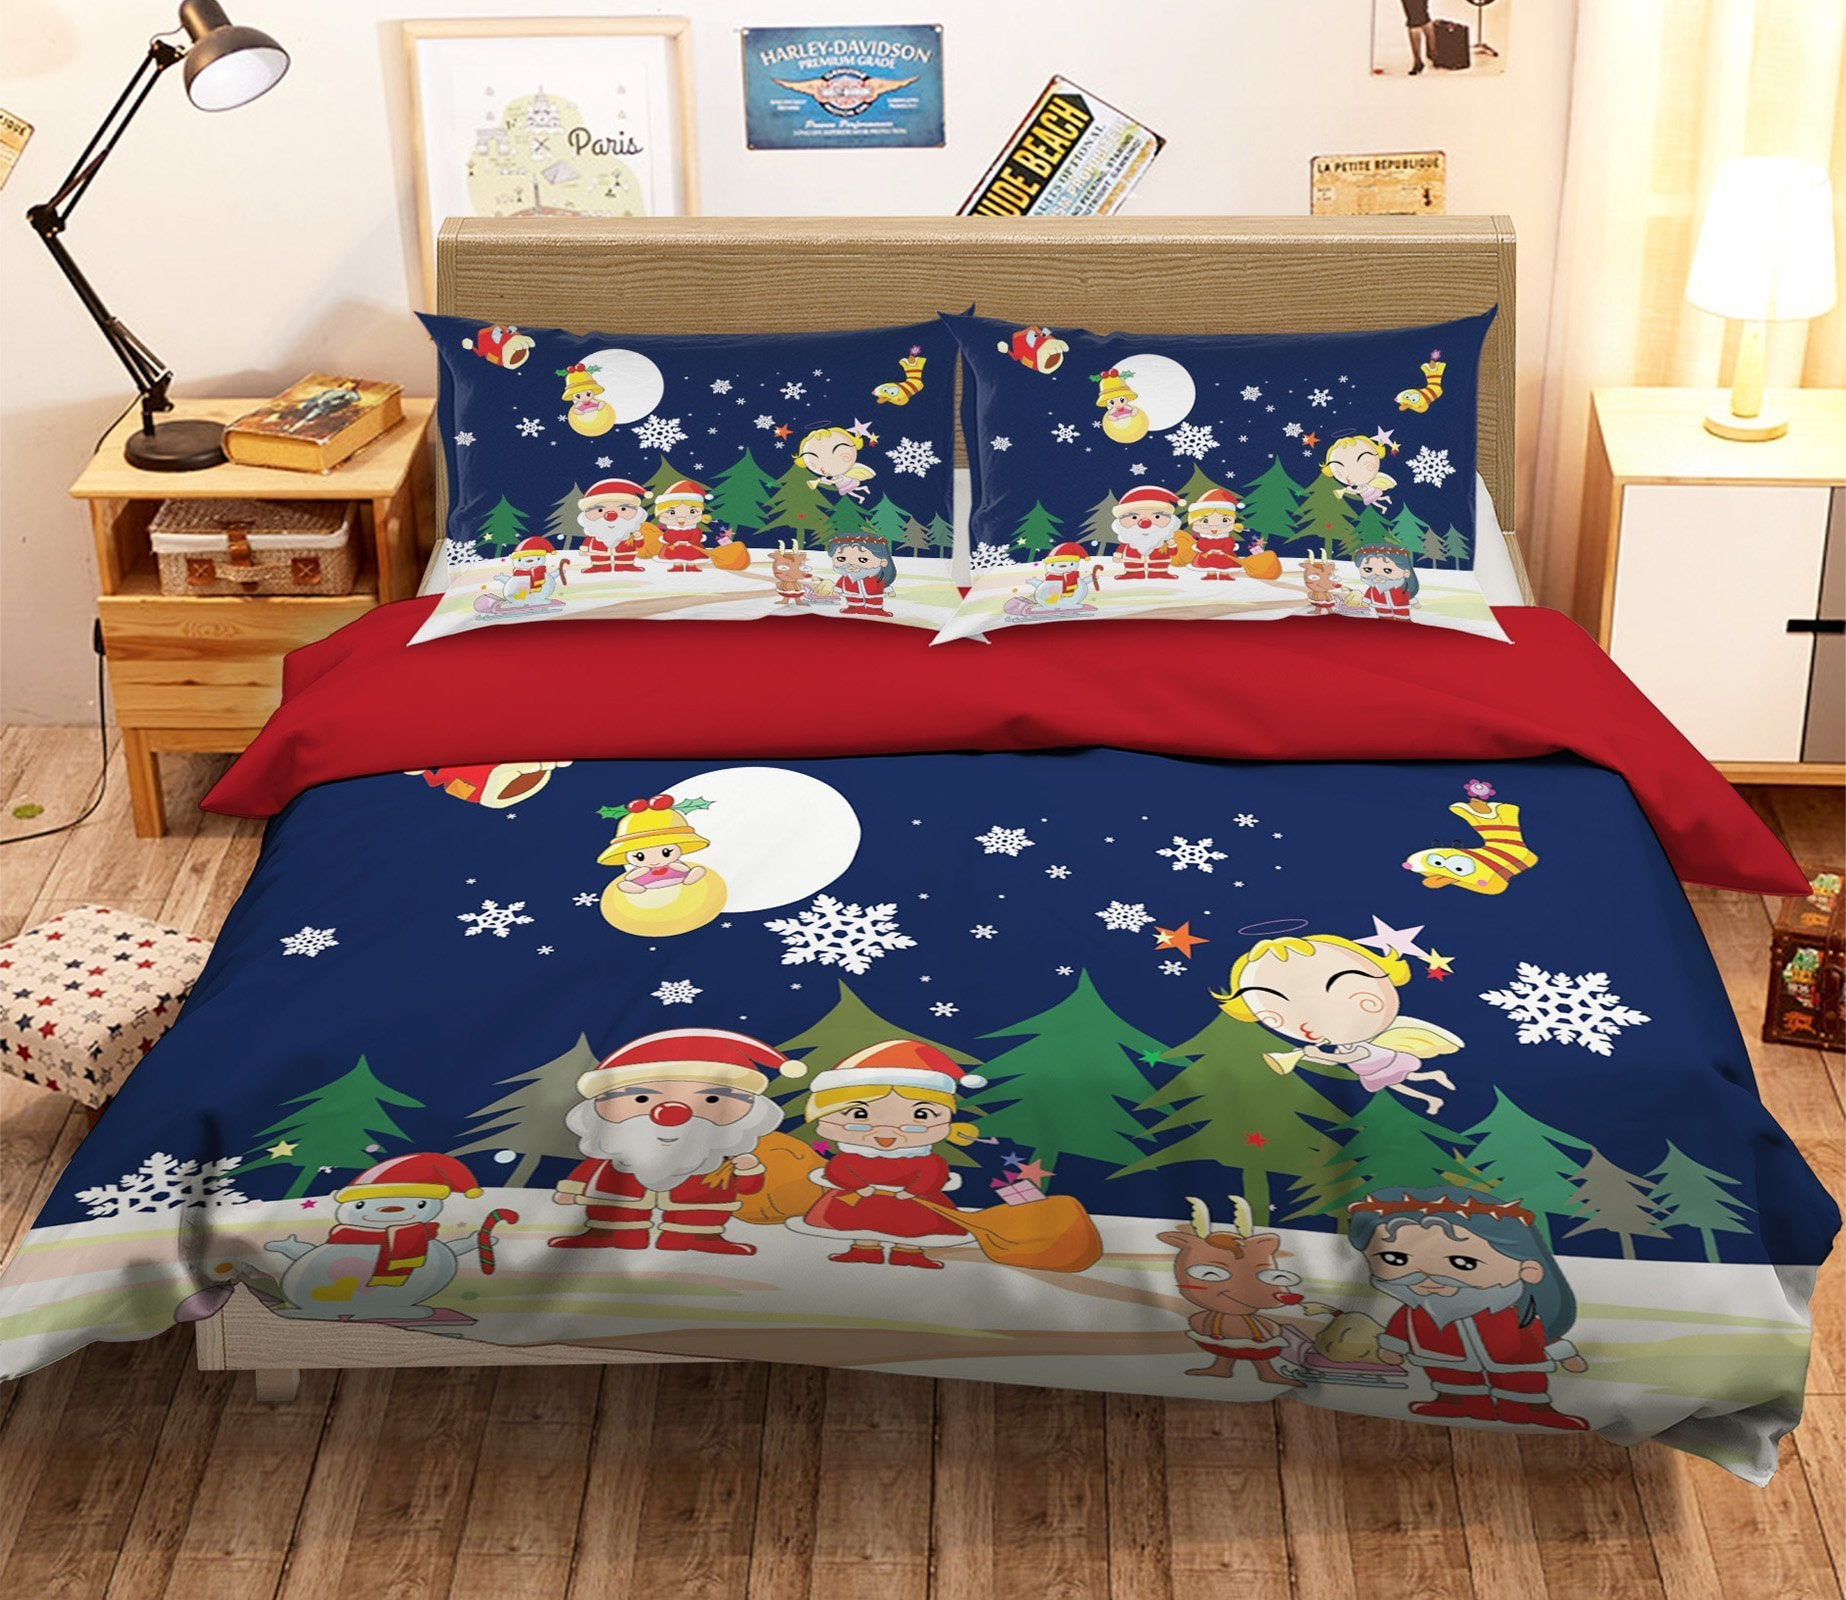 3D Christmas Moon Companionship 43 Bed Pillowcases Quilt Quiet Covers AJ Creativity Home